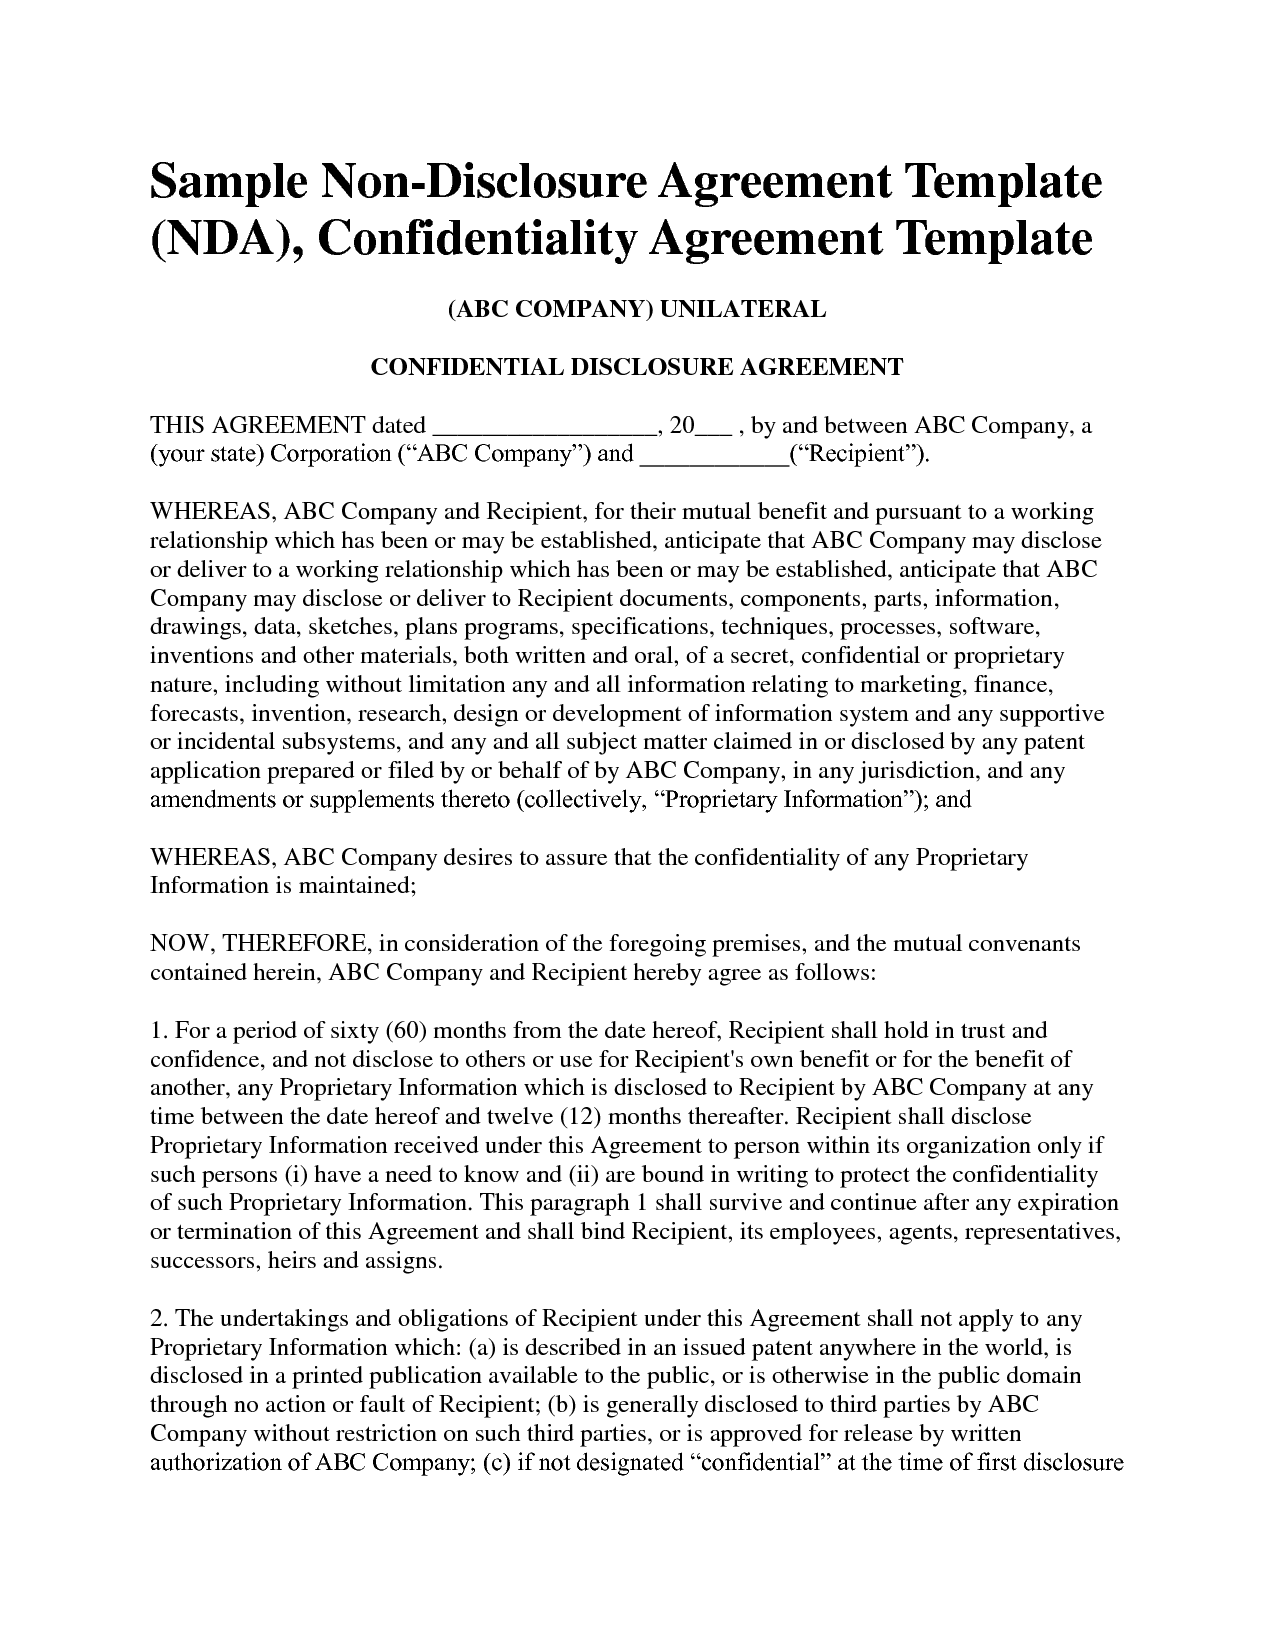 Non Disclosure Agreement Template Free Sample Nda Template Mvrsqrn ...   Nda  Sample